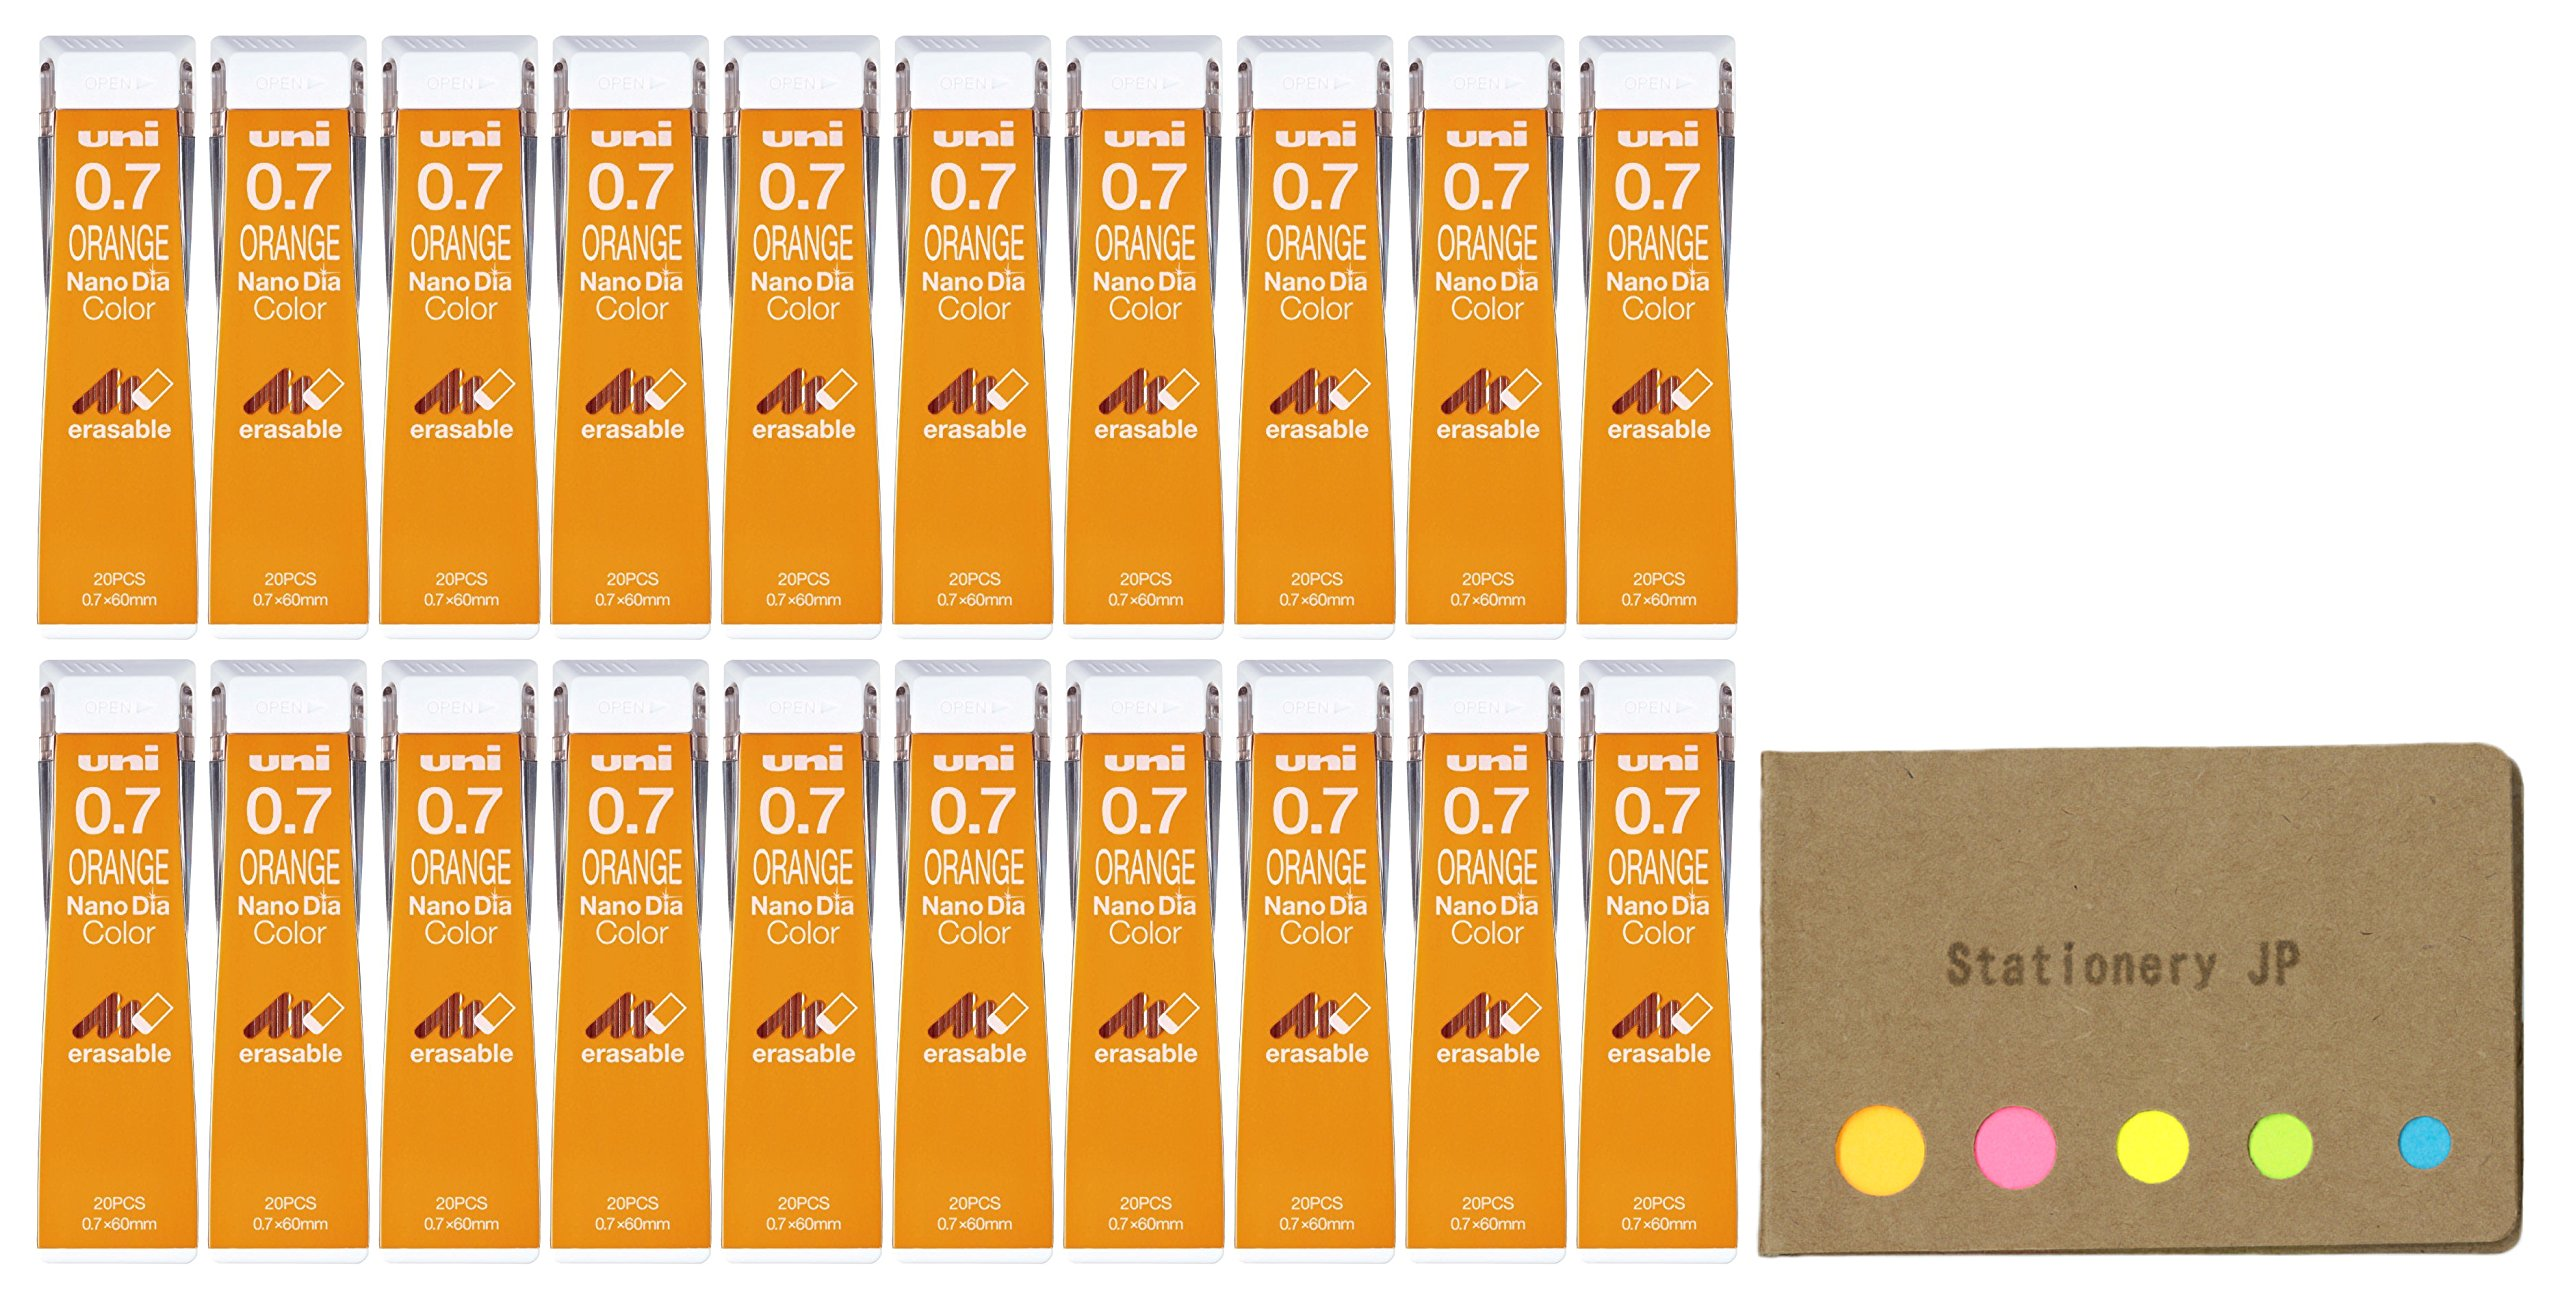 Uni NanoDia Color Mechanical Pencil Leads, 0.7mm, Orange, 20-pack/total 400 Leads, Sticky Notes Value Set by Stationery JP (Image #1)